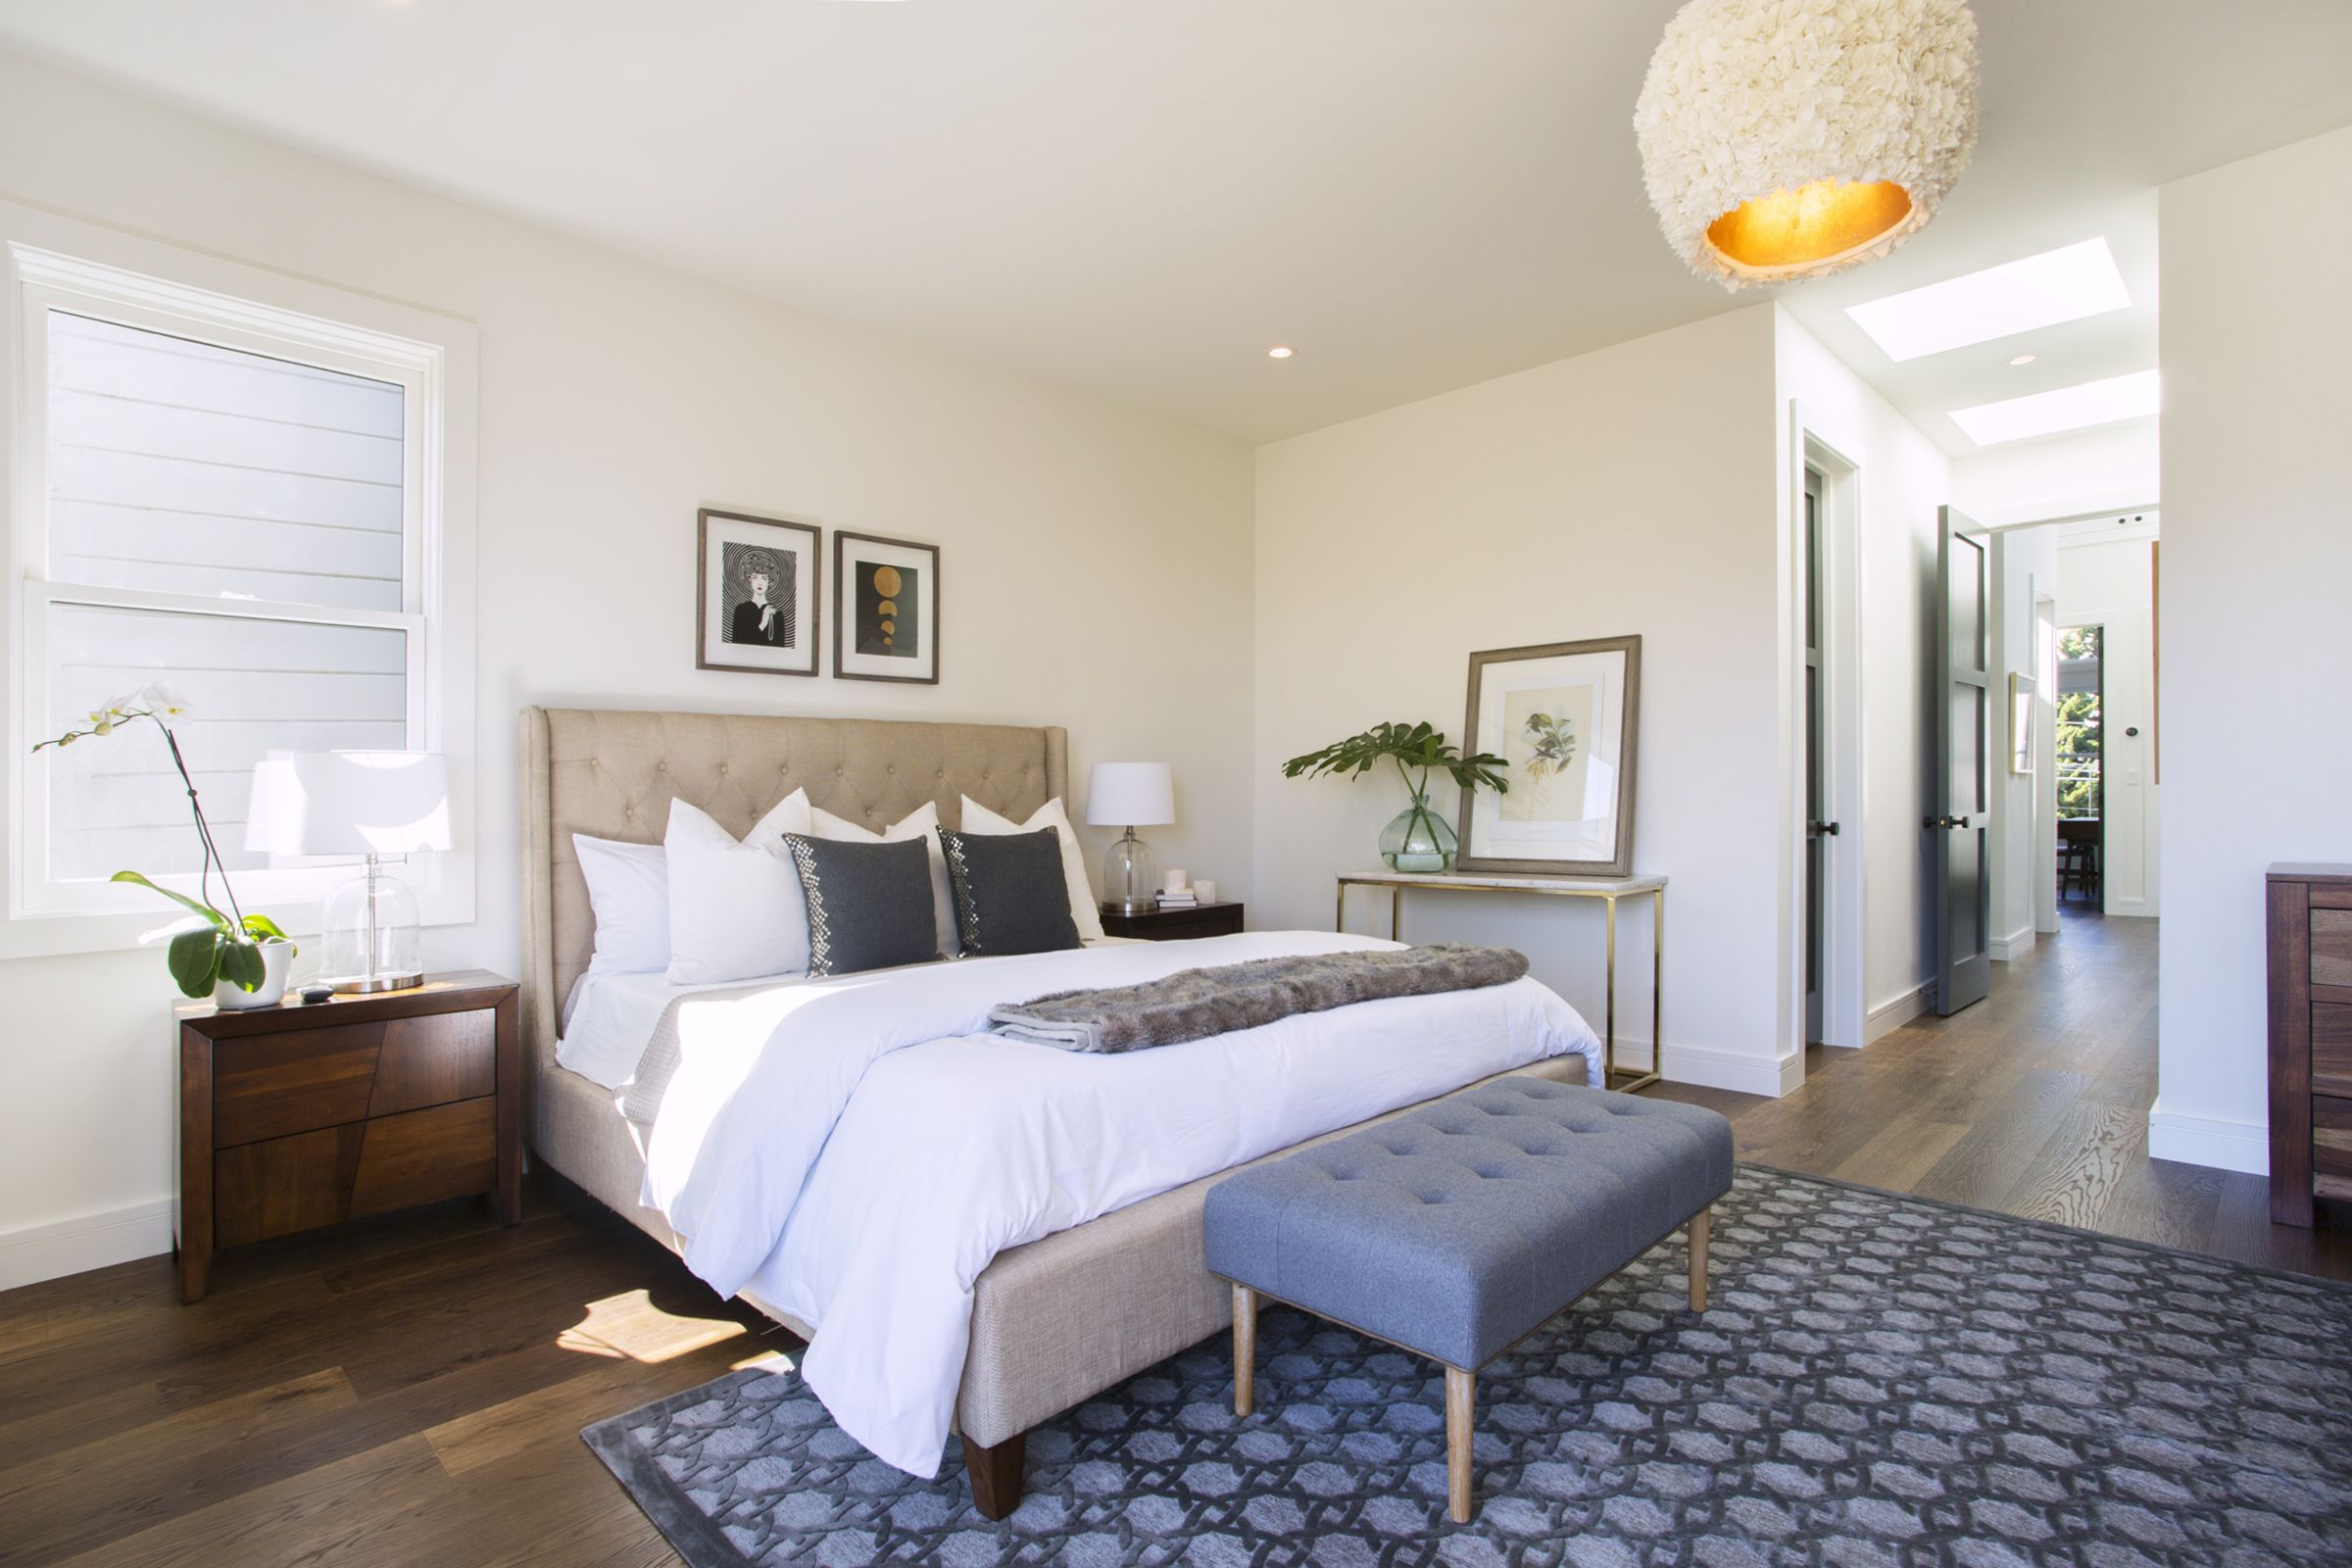 A Remarkable Renovation For A San Francisco Fixer Upper Interior Photography Bedding